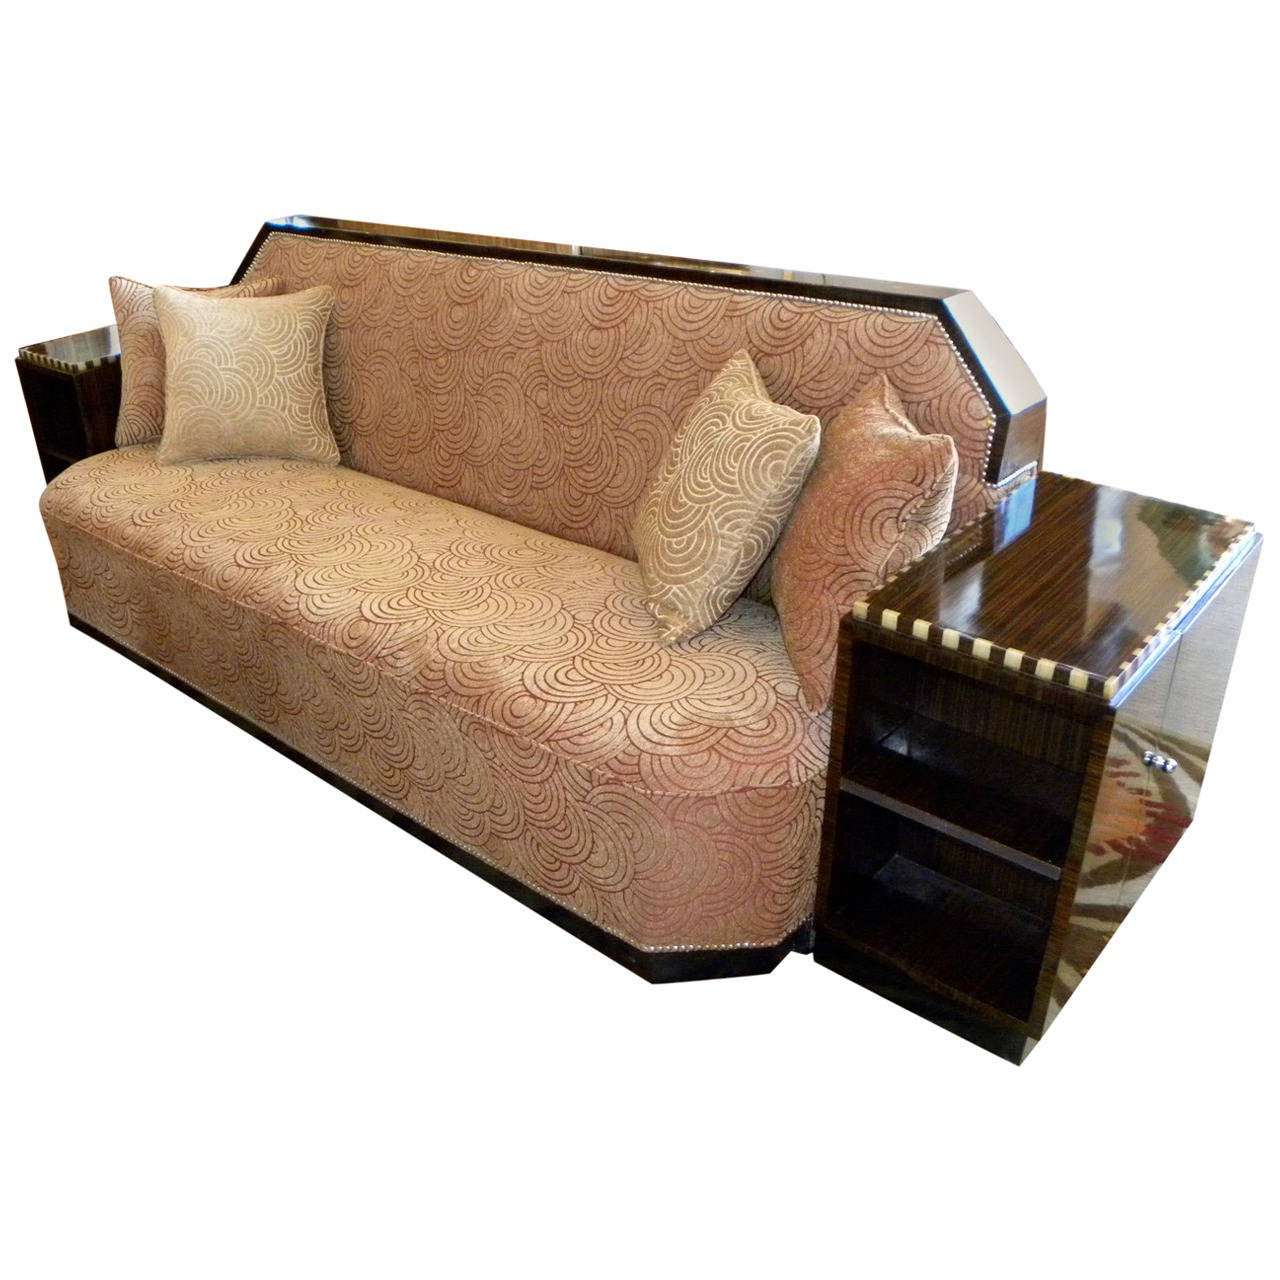 art deco cozy corner or daybed sofa at 1stdibs. Black Bedroom Furniture Sets. Home Design Ideas